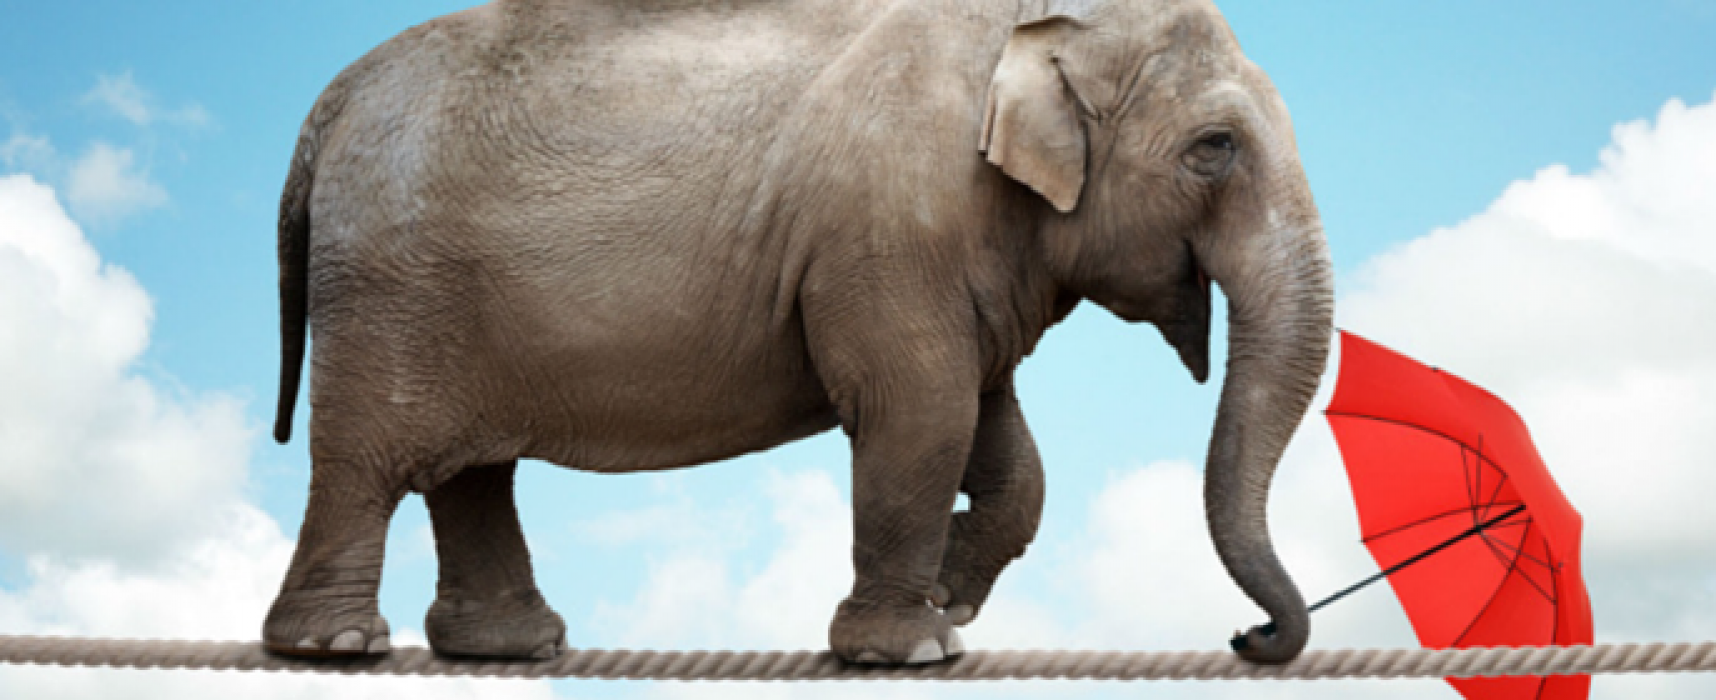 Why You and Your Elephant Haven't Lost Weight Yet